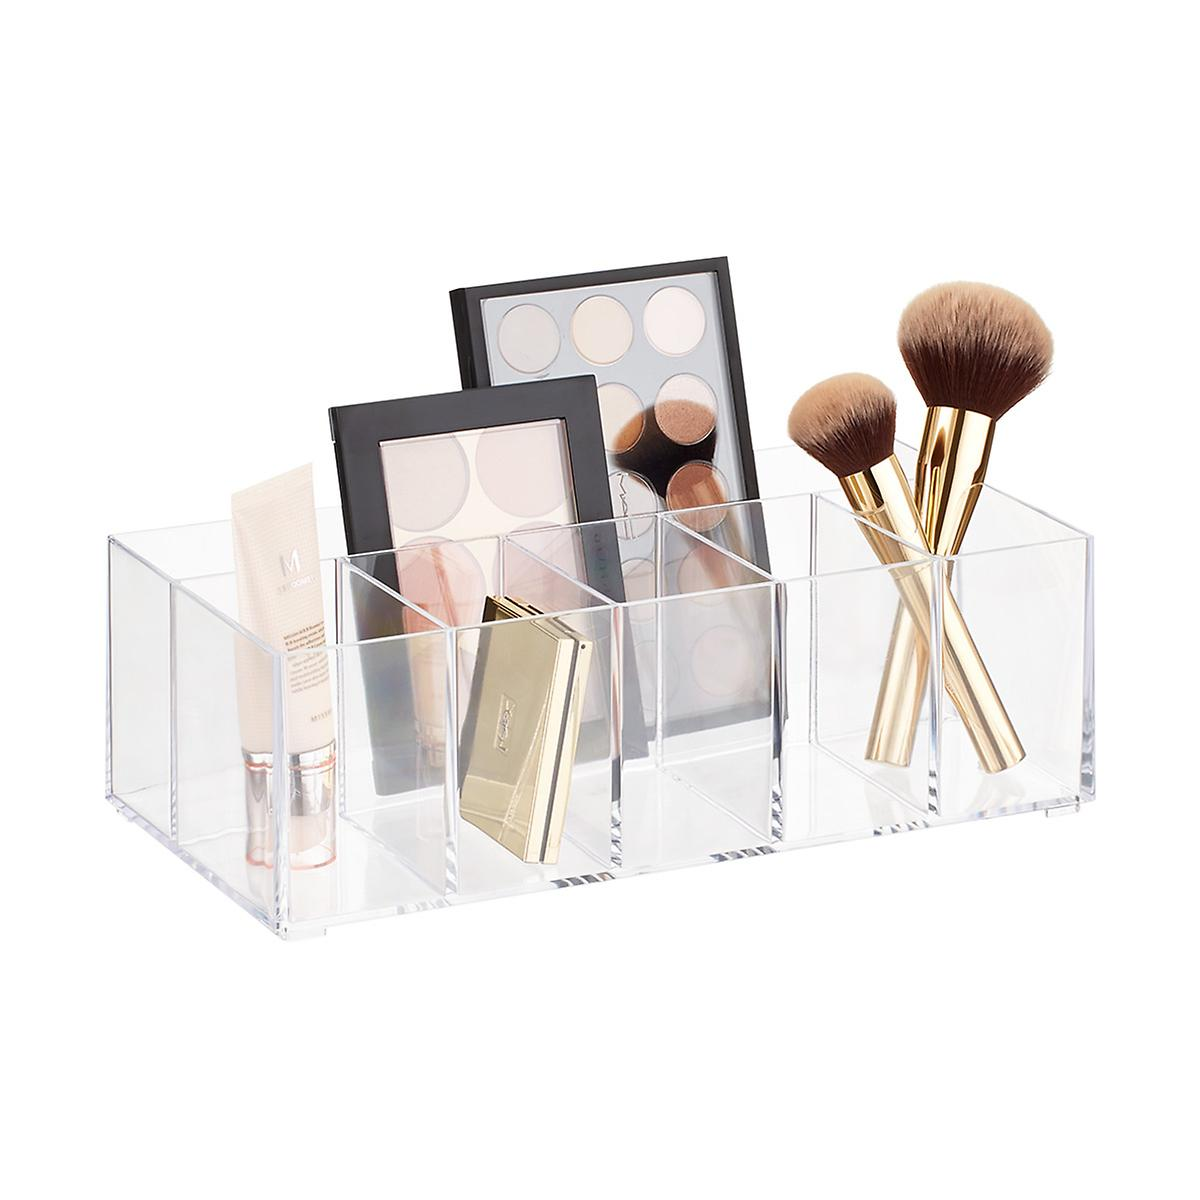 InterDesign Clarity Cosmetics & Vanity Organizer